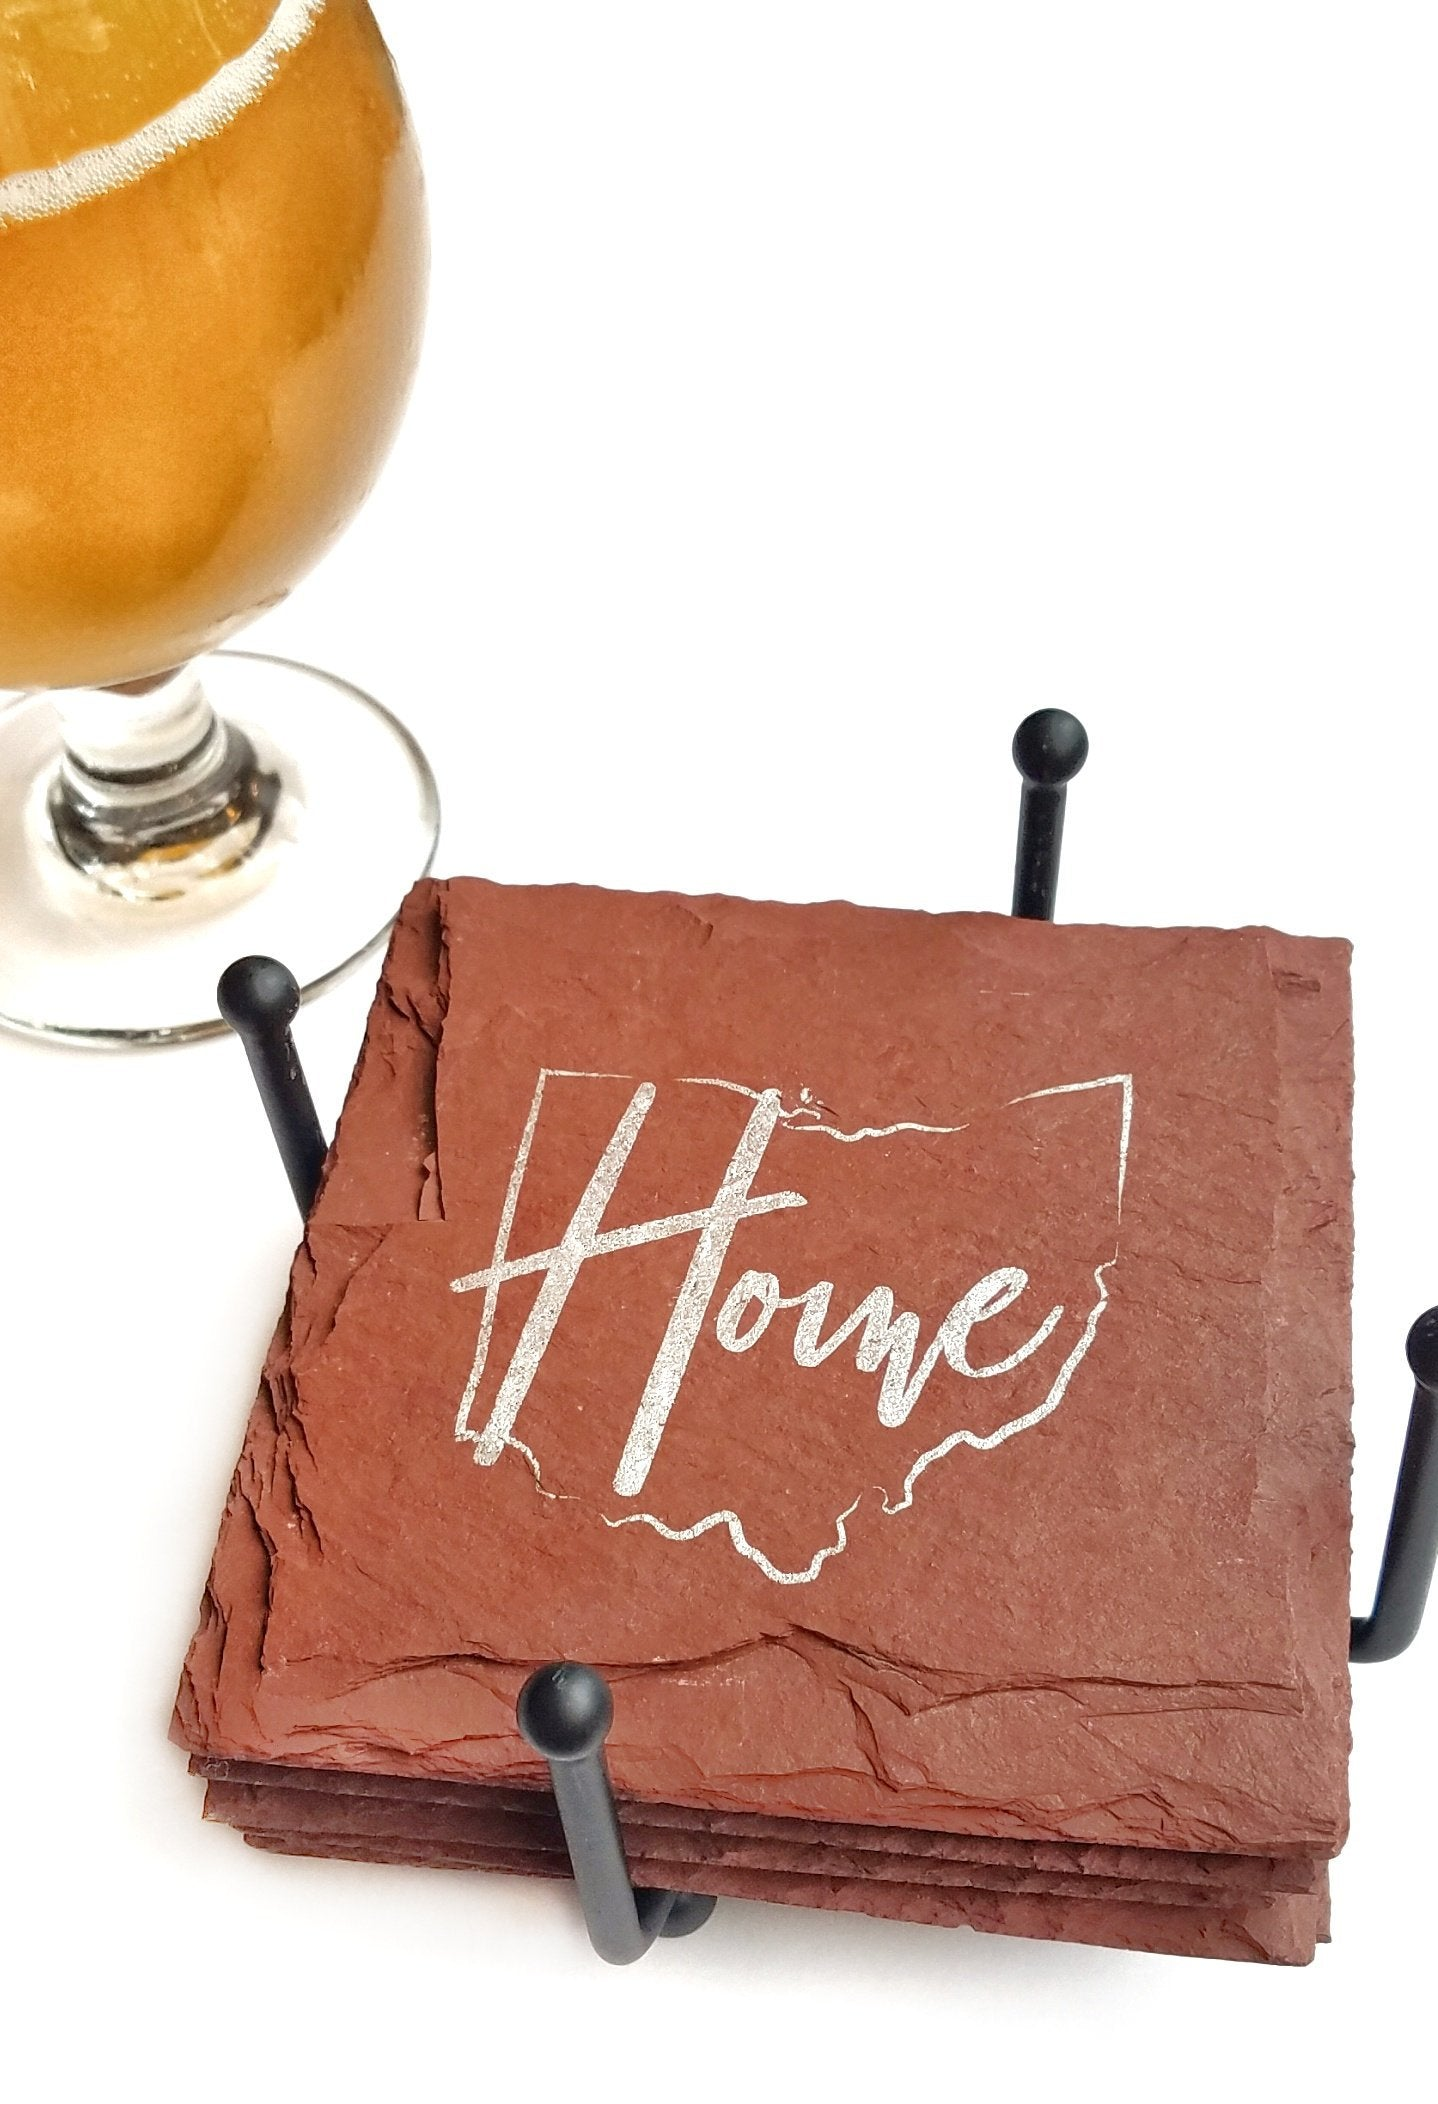 Build your own State Gift Set with Coasters & Holder